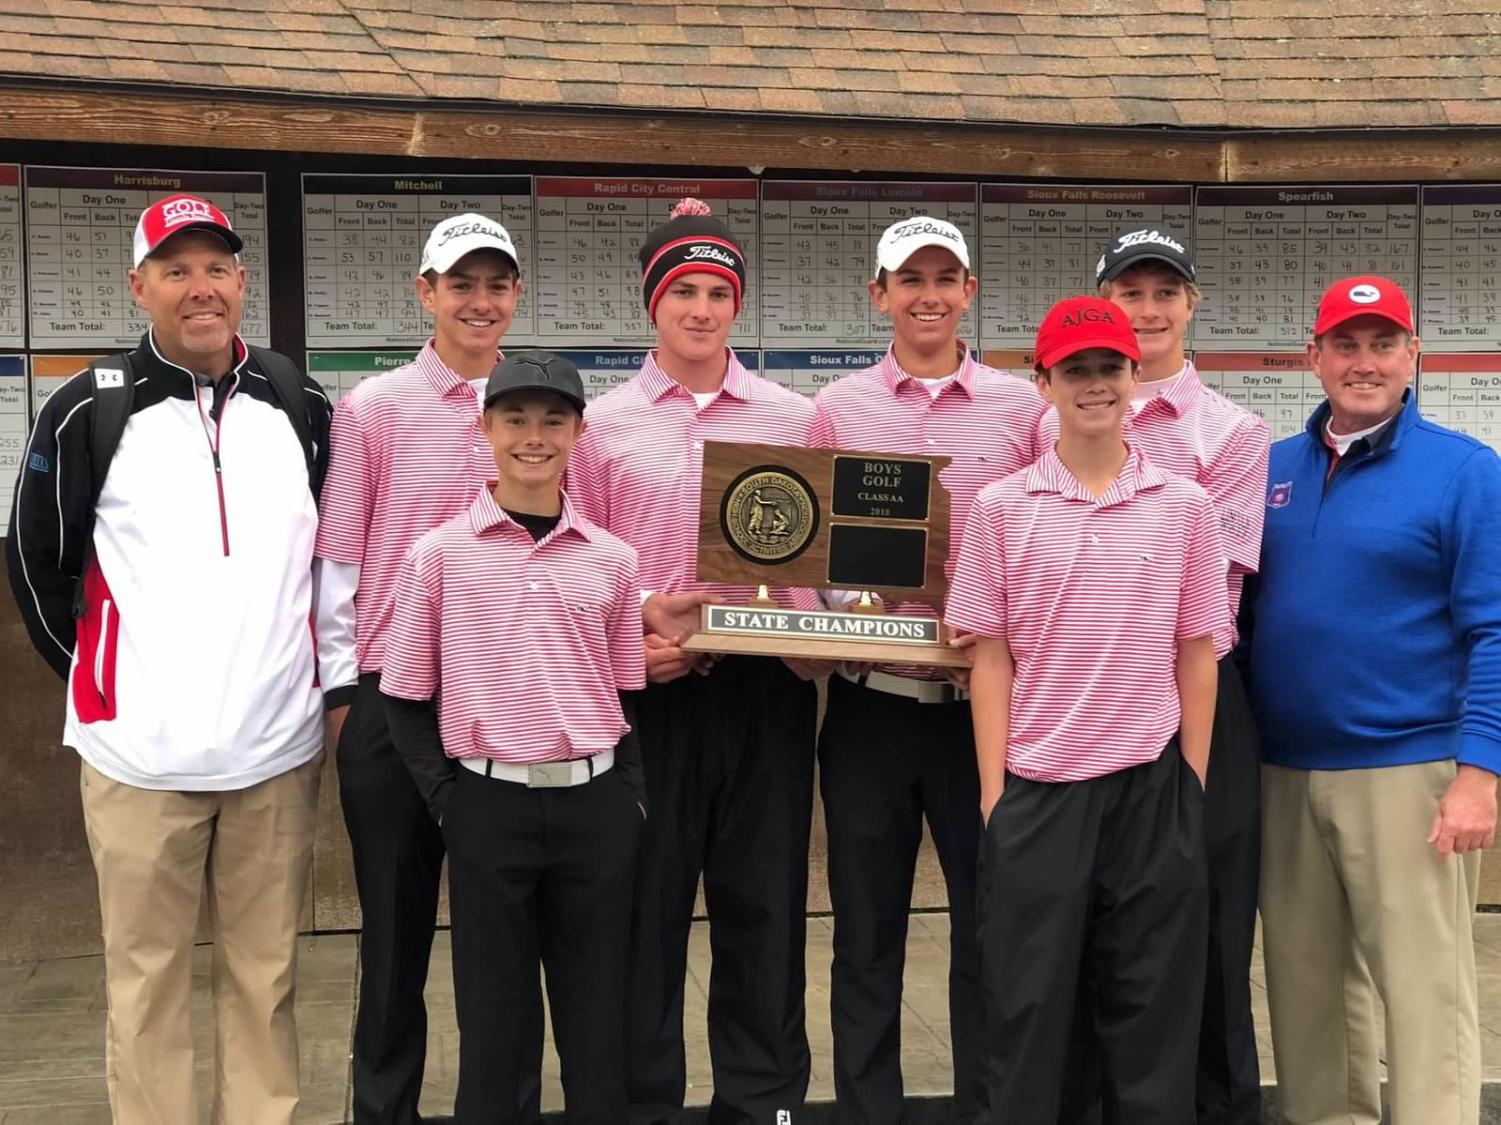 The LHS boys golf team won the State Championship under the leadership of Jeff Halseth and Scott Amundson.  Left: Coach Amundson, Ryan Neff, Max Honner, Adam Schrader, Nash Stenberg, Coach Halseth. Front left: Jack Hillgenberg, Luke Honner